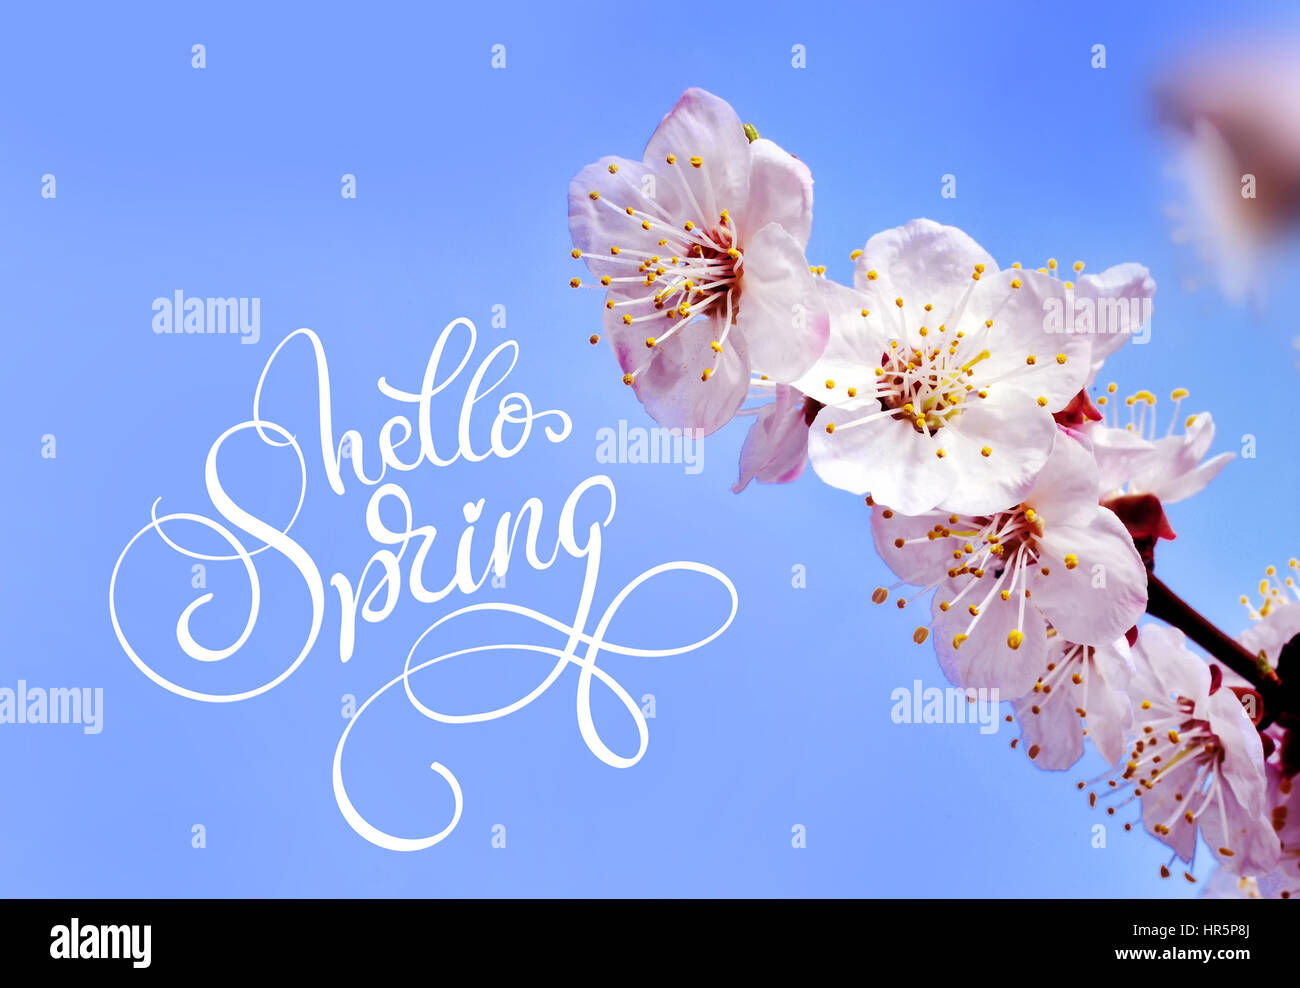 Spring flowers border and text hello spring calligraphy lettering spring flowers border and text hello spring calligraphy lettering mightylinksfo